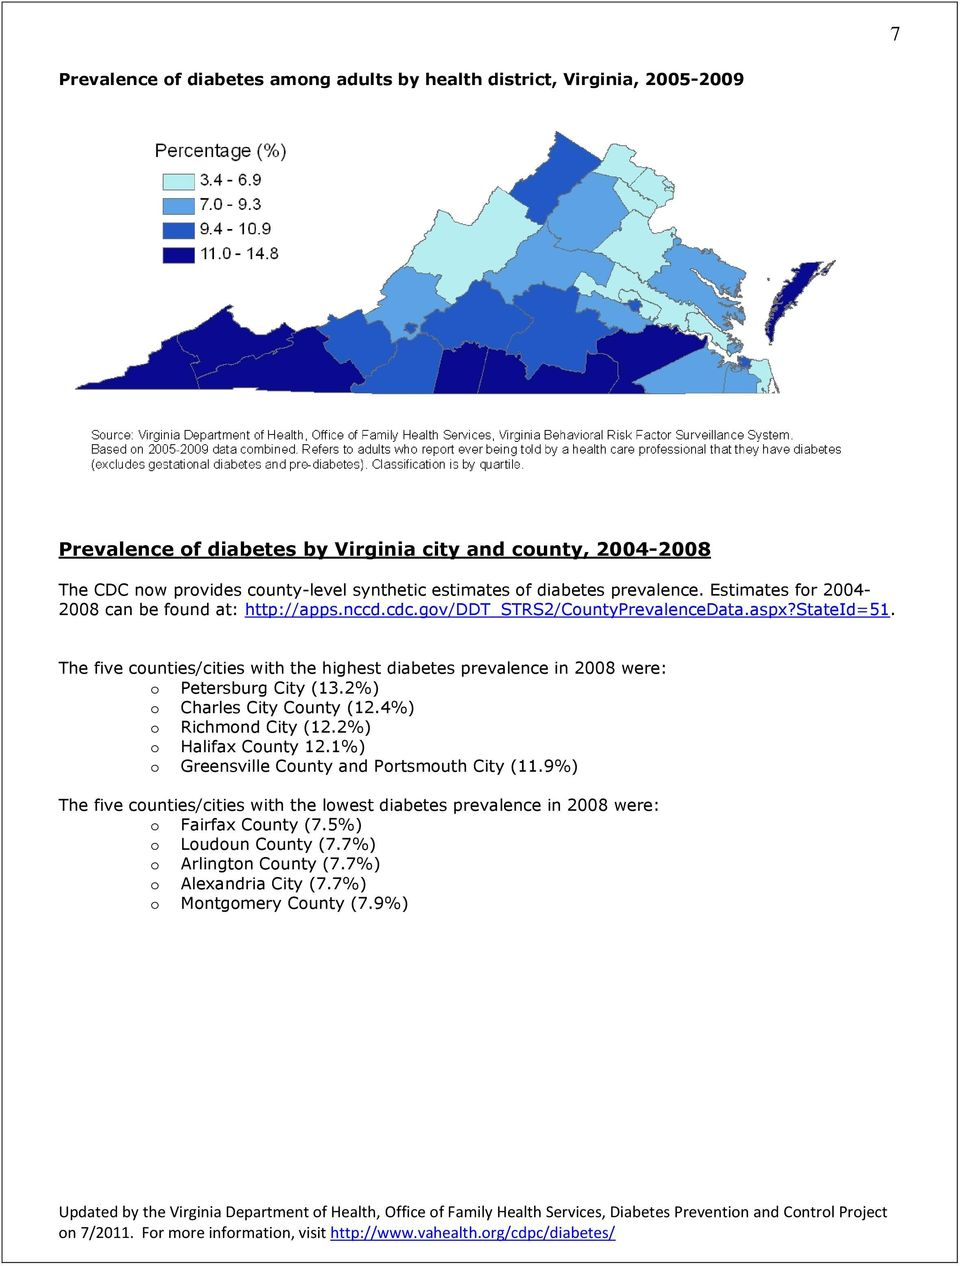 The five counties/cities with the highest diabetes prevalence in 2008 were: o Petersburg City (13.2%) o Charles City County (12.4%) o Richmond City (12.2%) o Halifax County 12.